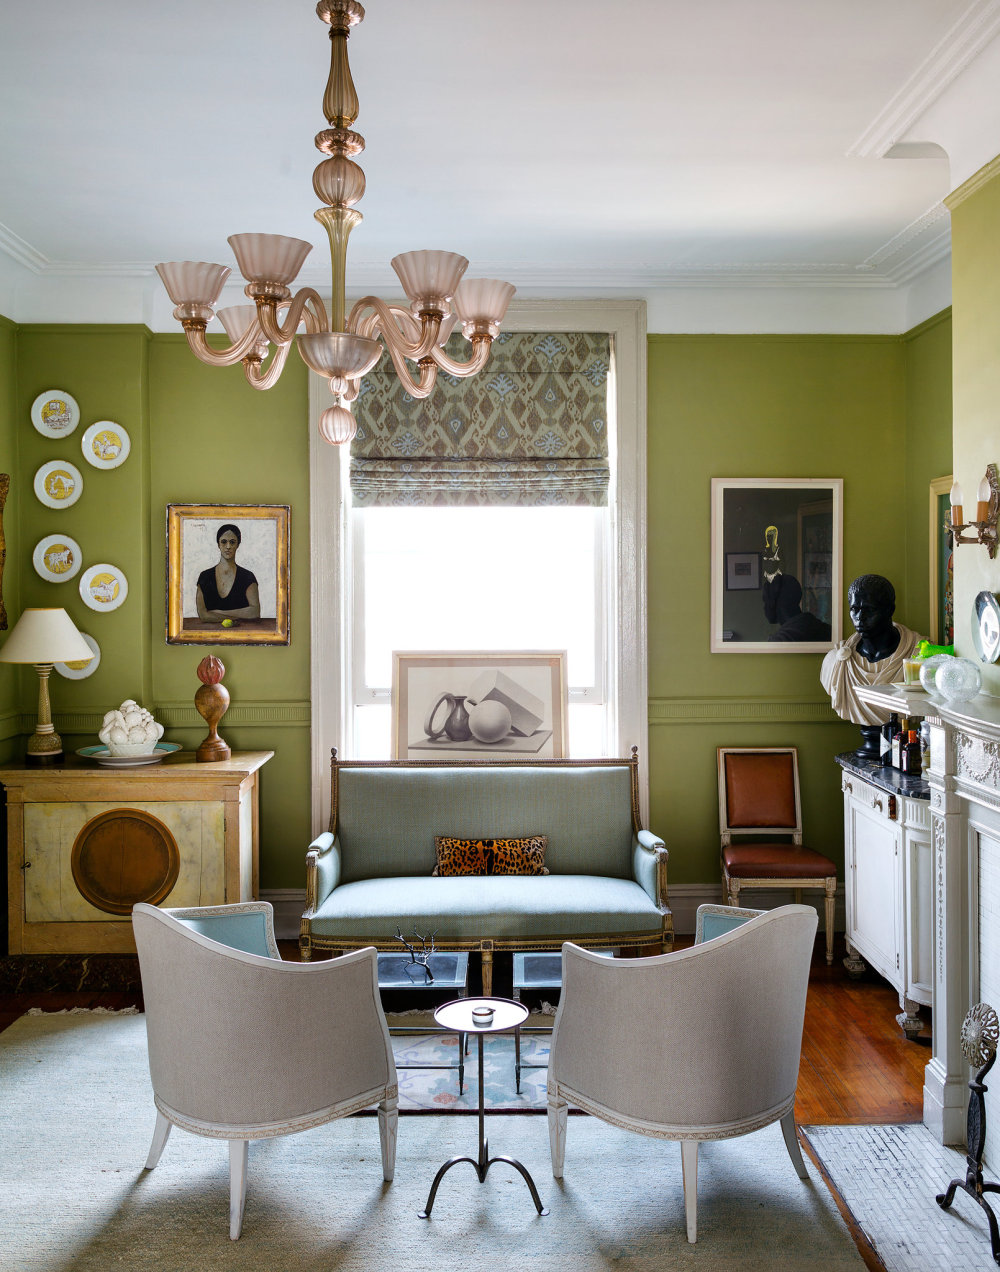 Decor inspiration  At Home With Sheila Bridges Harlem  Cool Chic Style Fashion